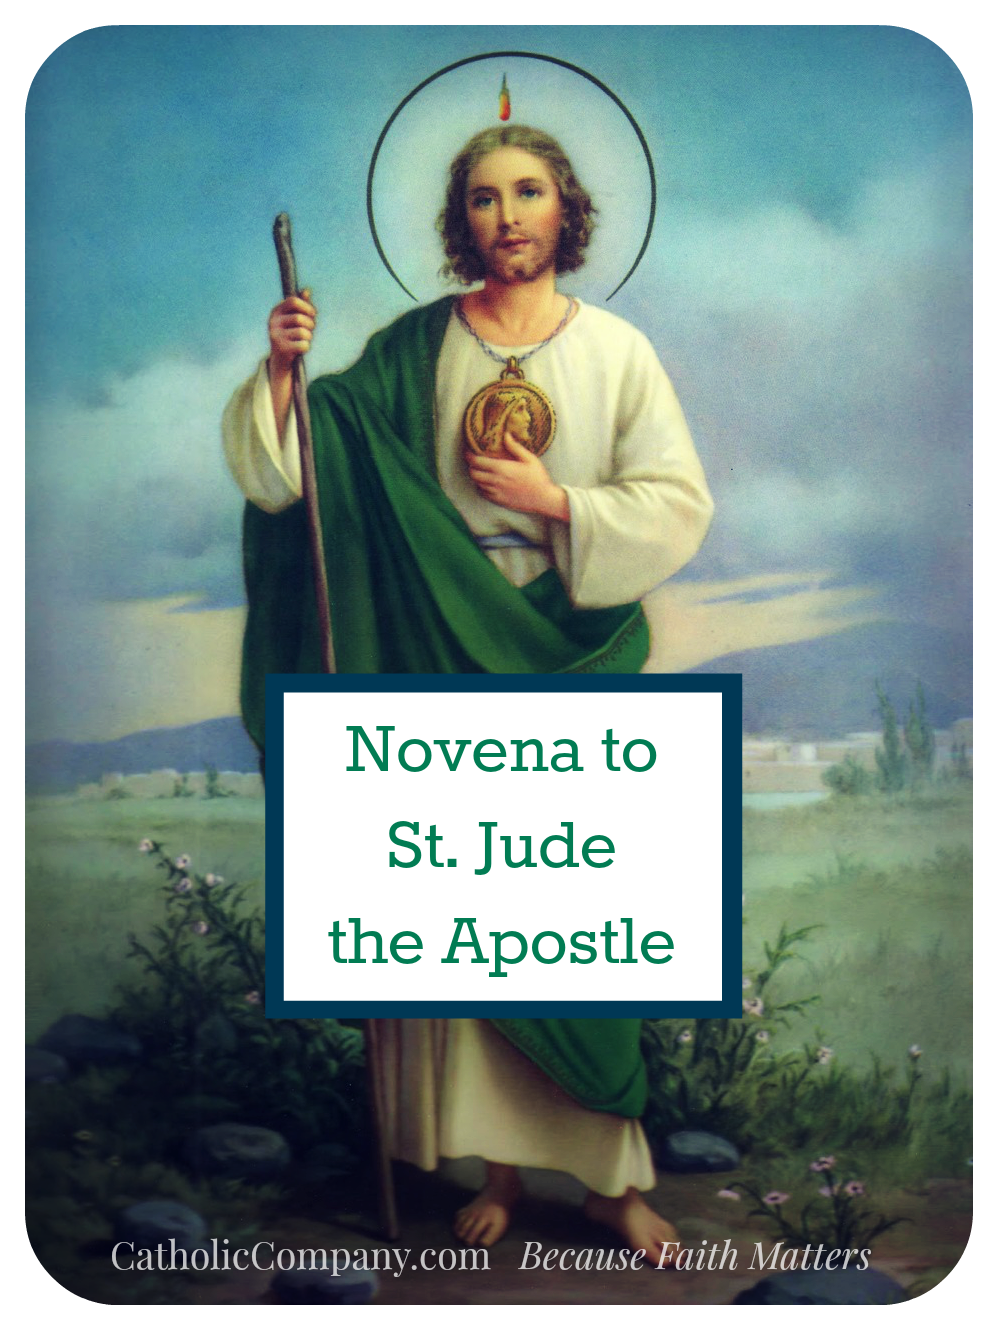 Novena to St. Jude, patron saint of impossible causes and hopeless situations